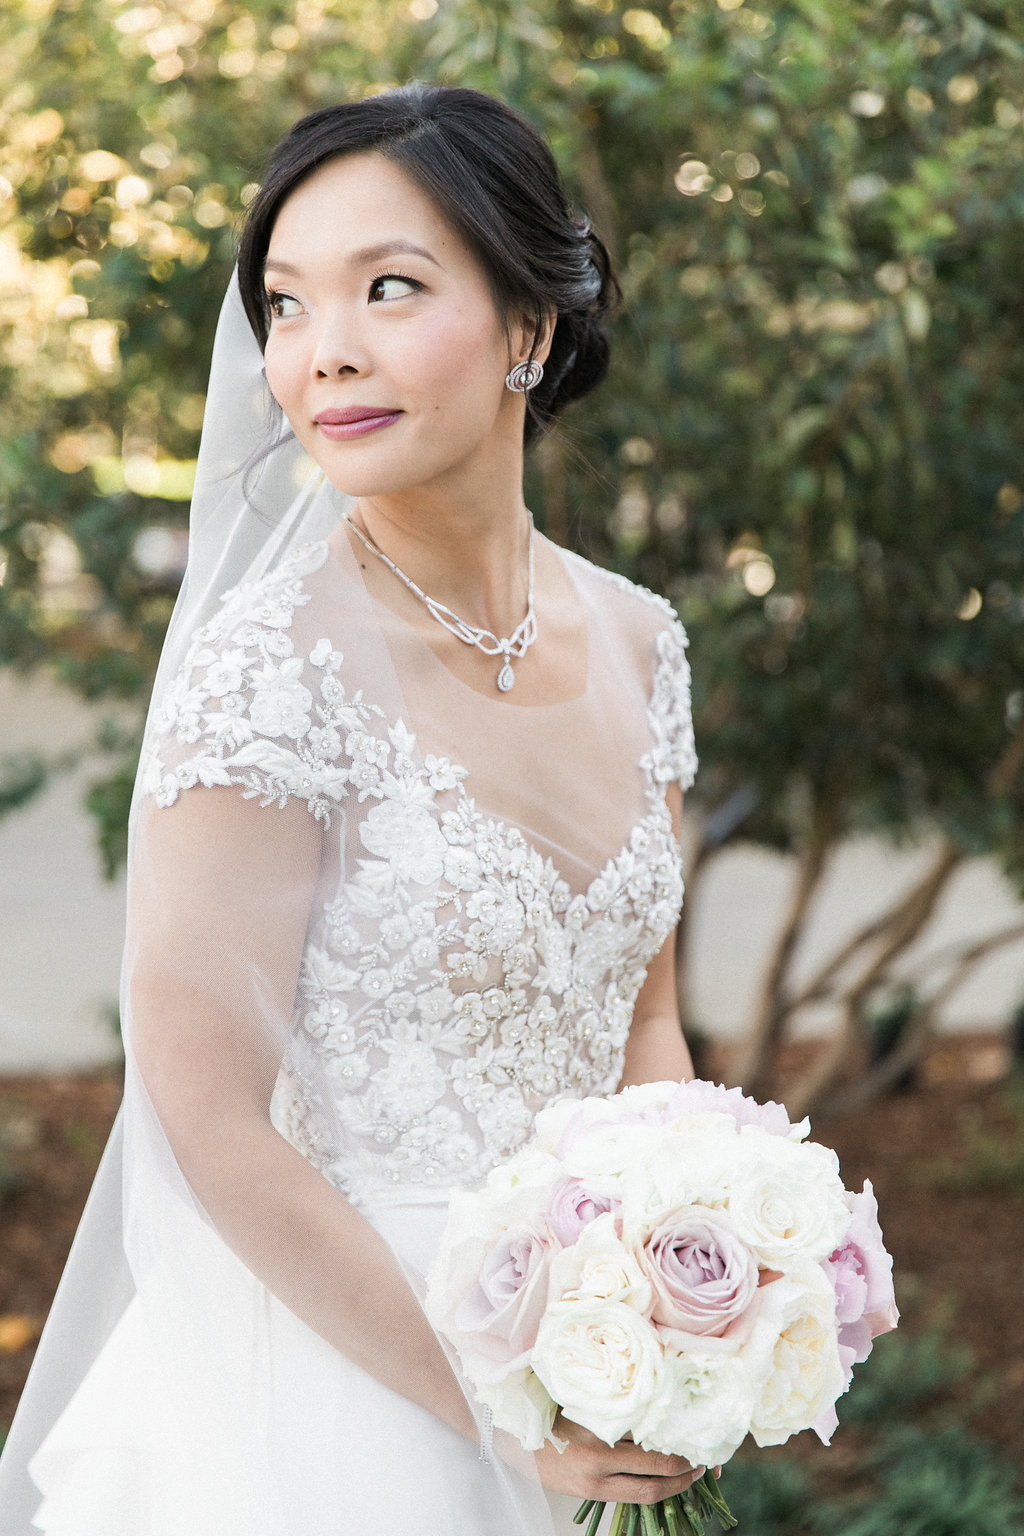 Stephanie_Peter_Wed_177.jpg